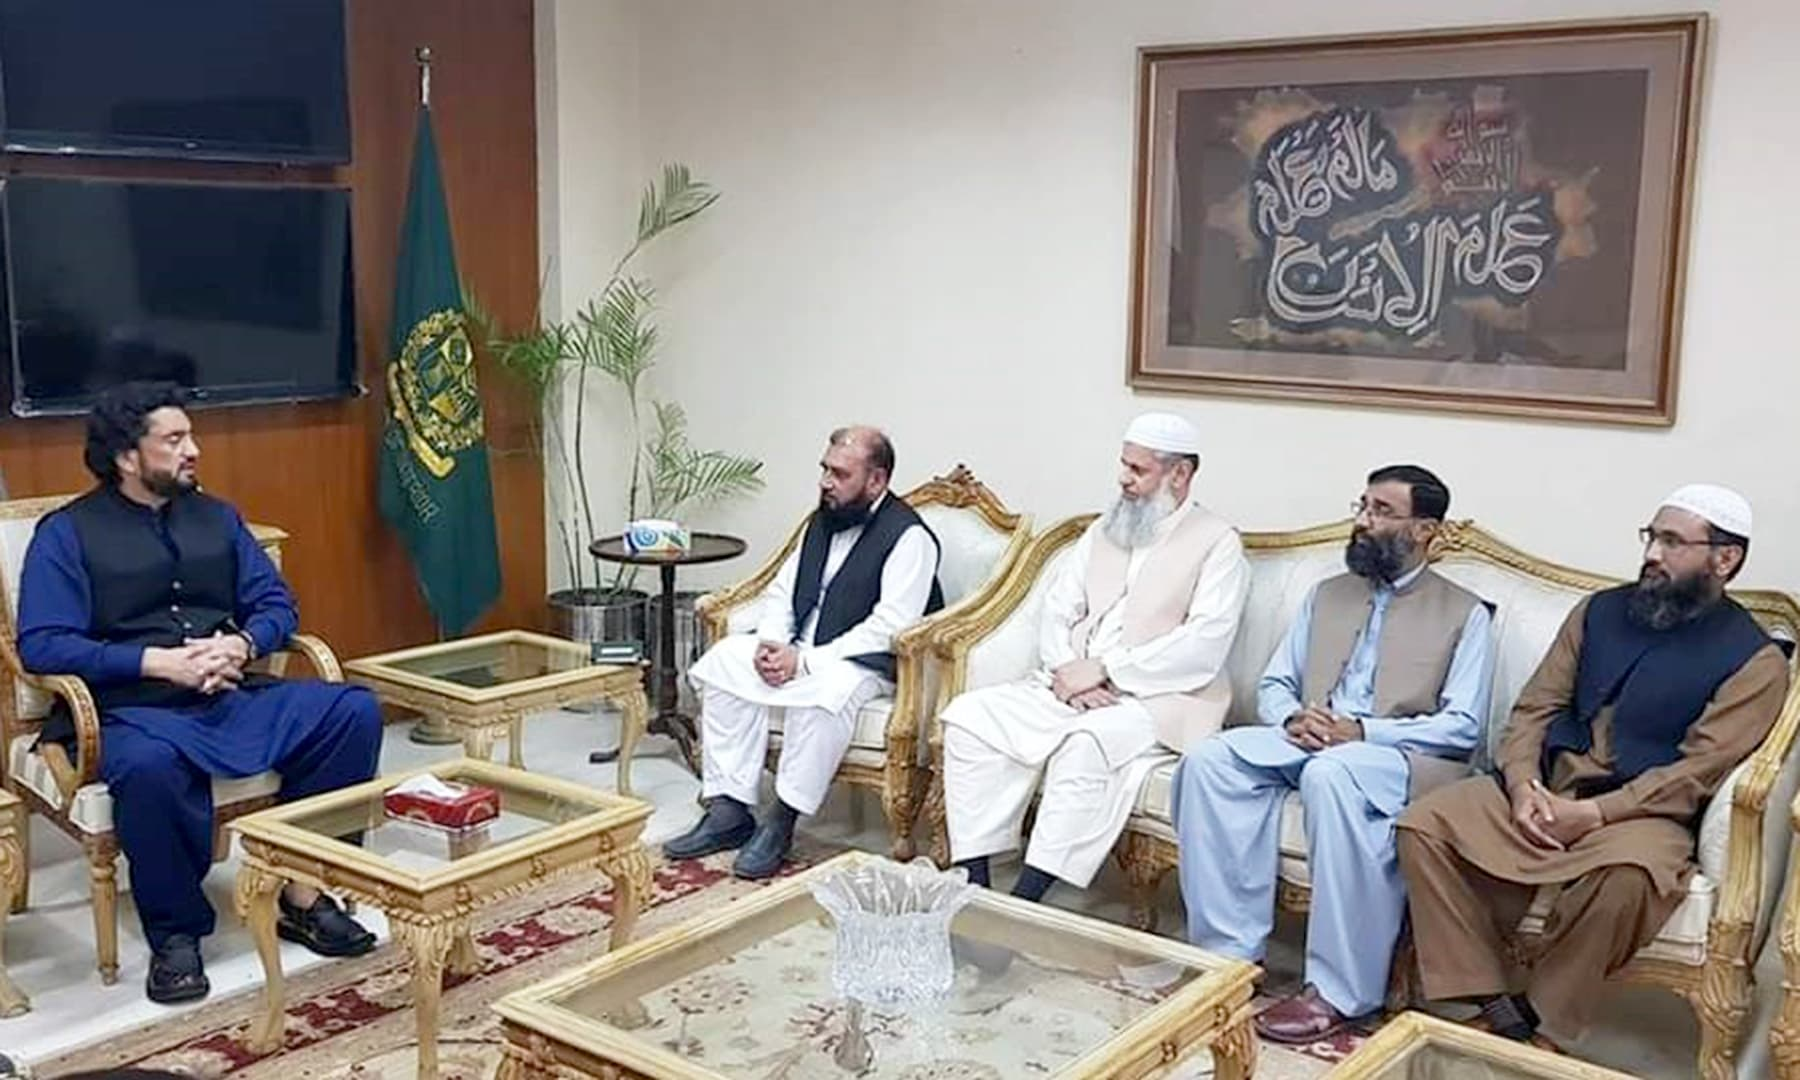 Minister of State for Interior Shehryar Khan Afridi in talks with  ulema and religious scholars.